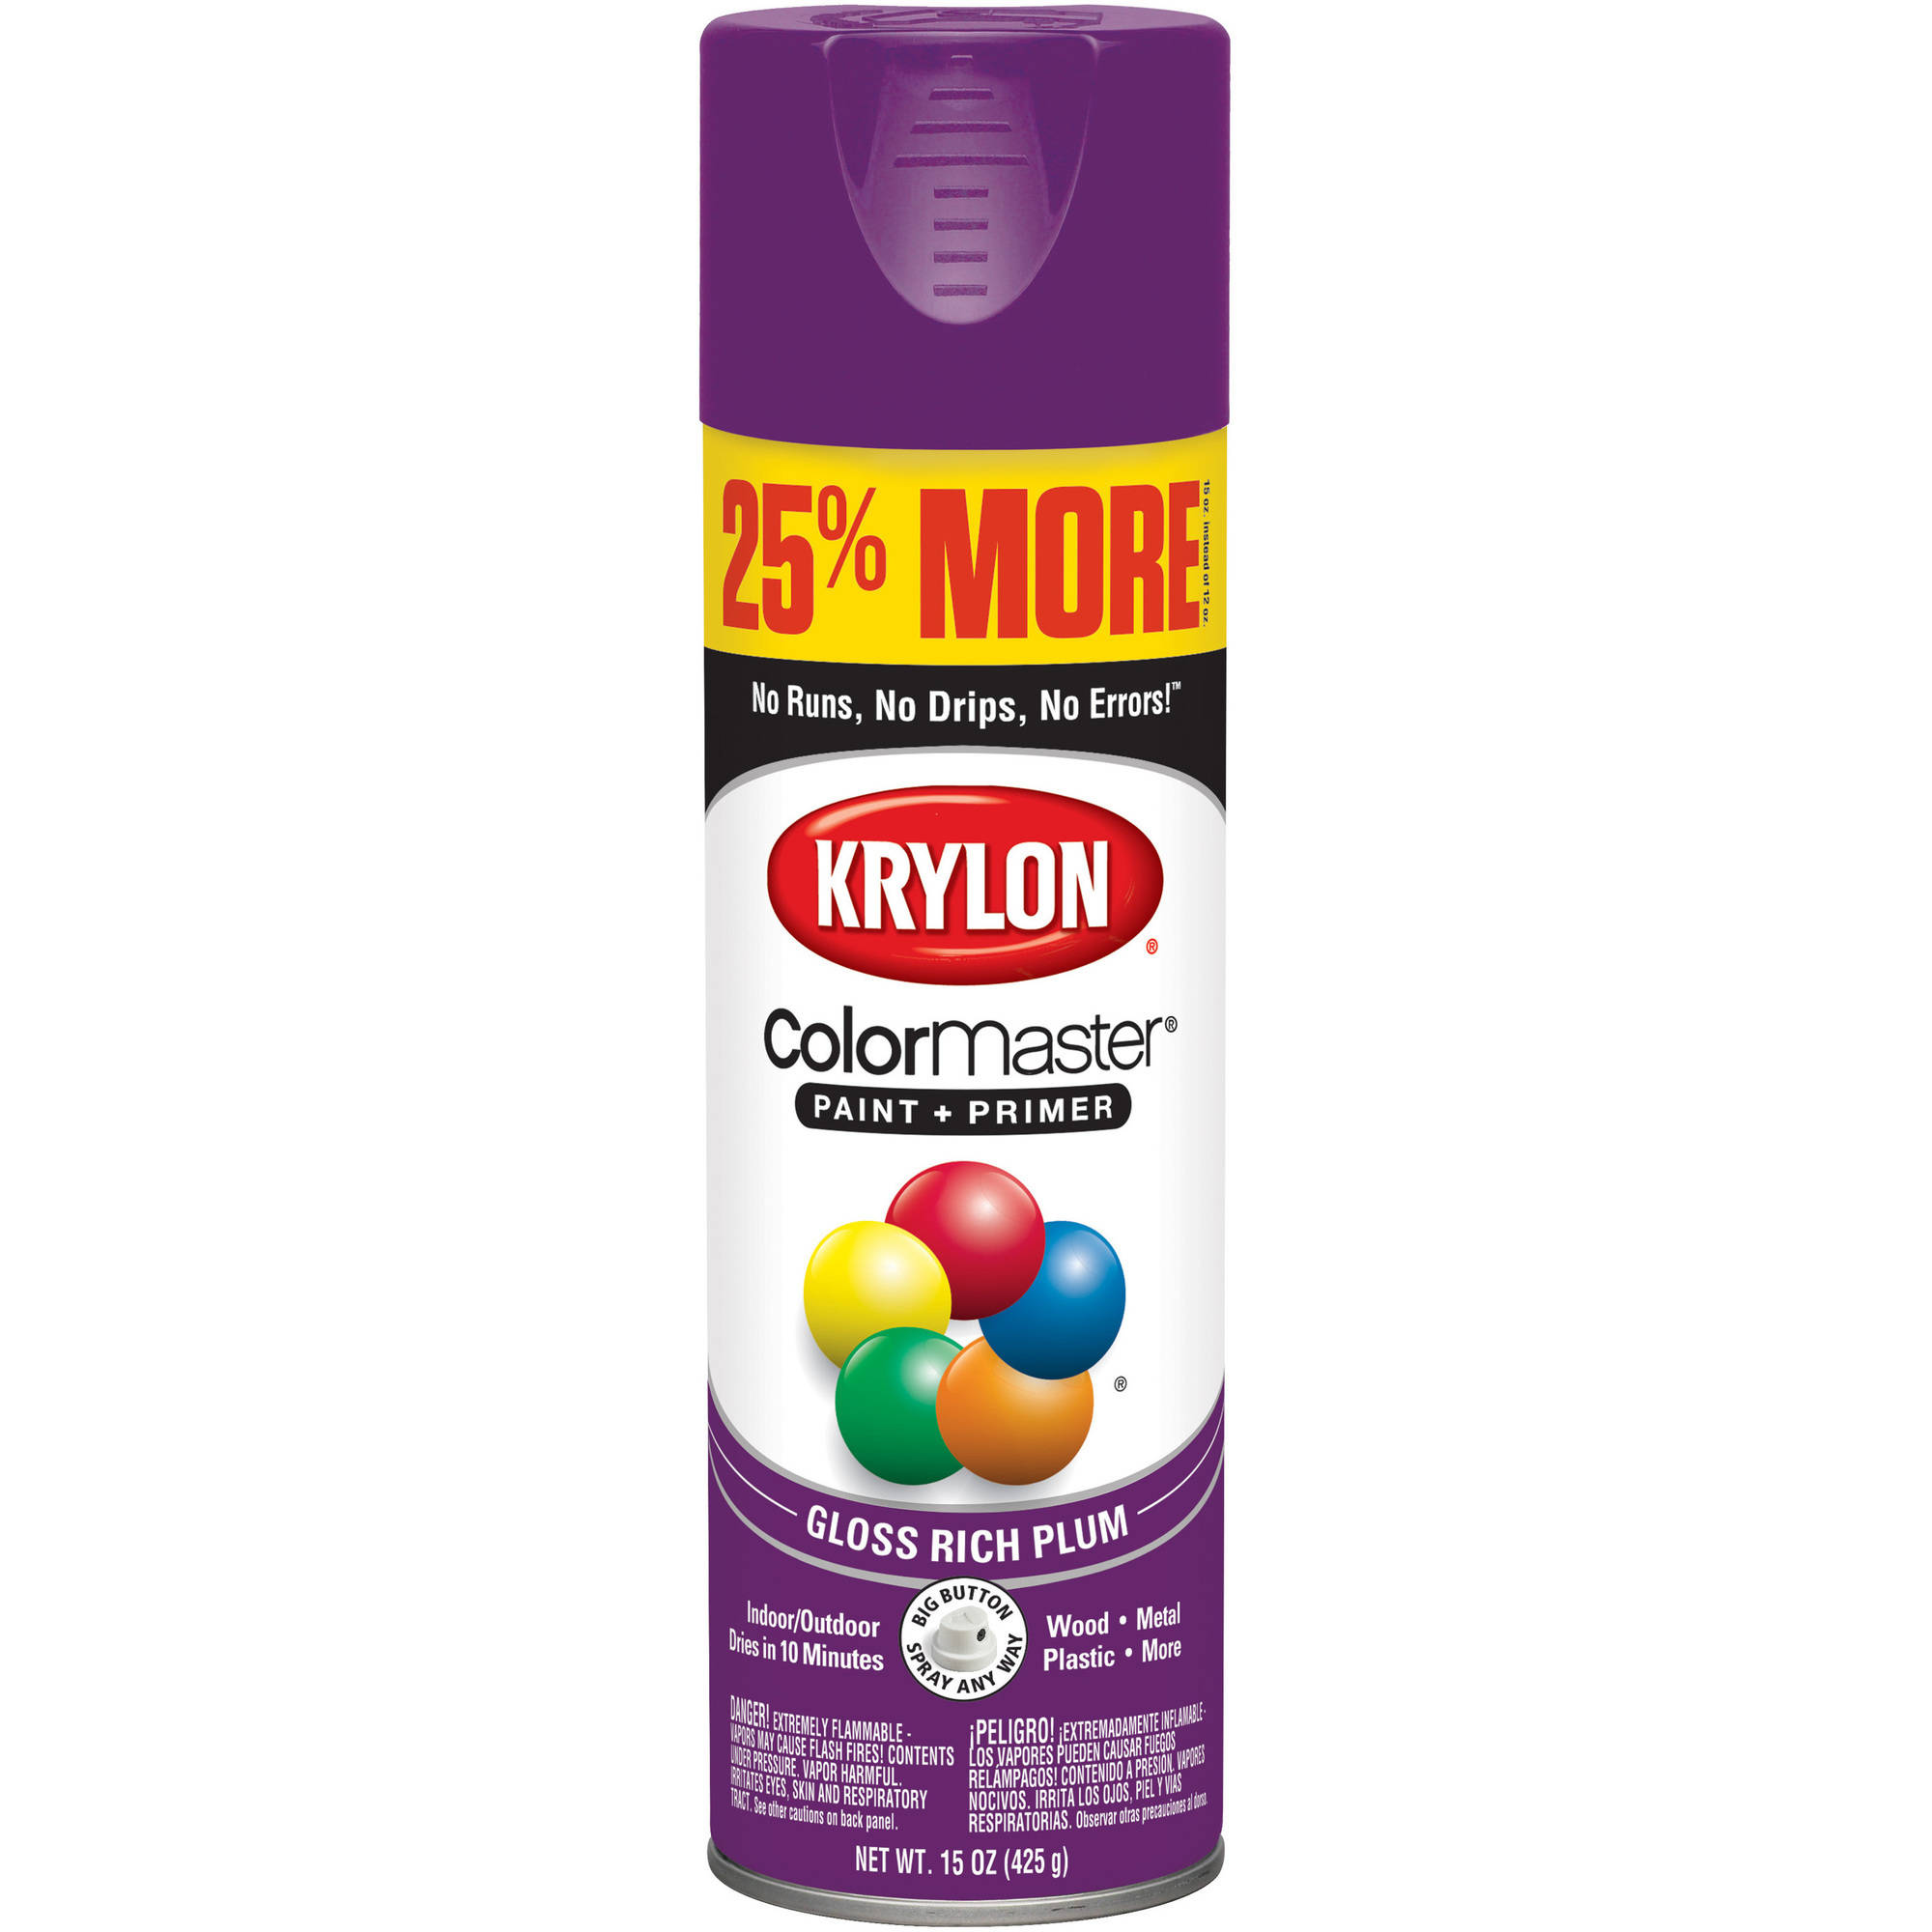 Krylon ColorMaster Paint & Primer Gloss Rich Plum, 15 oz